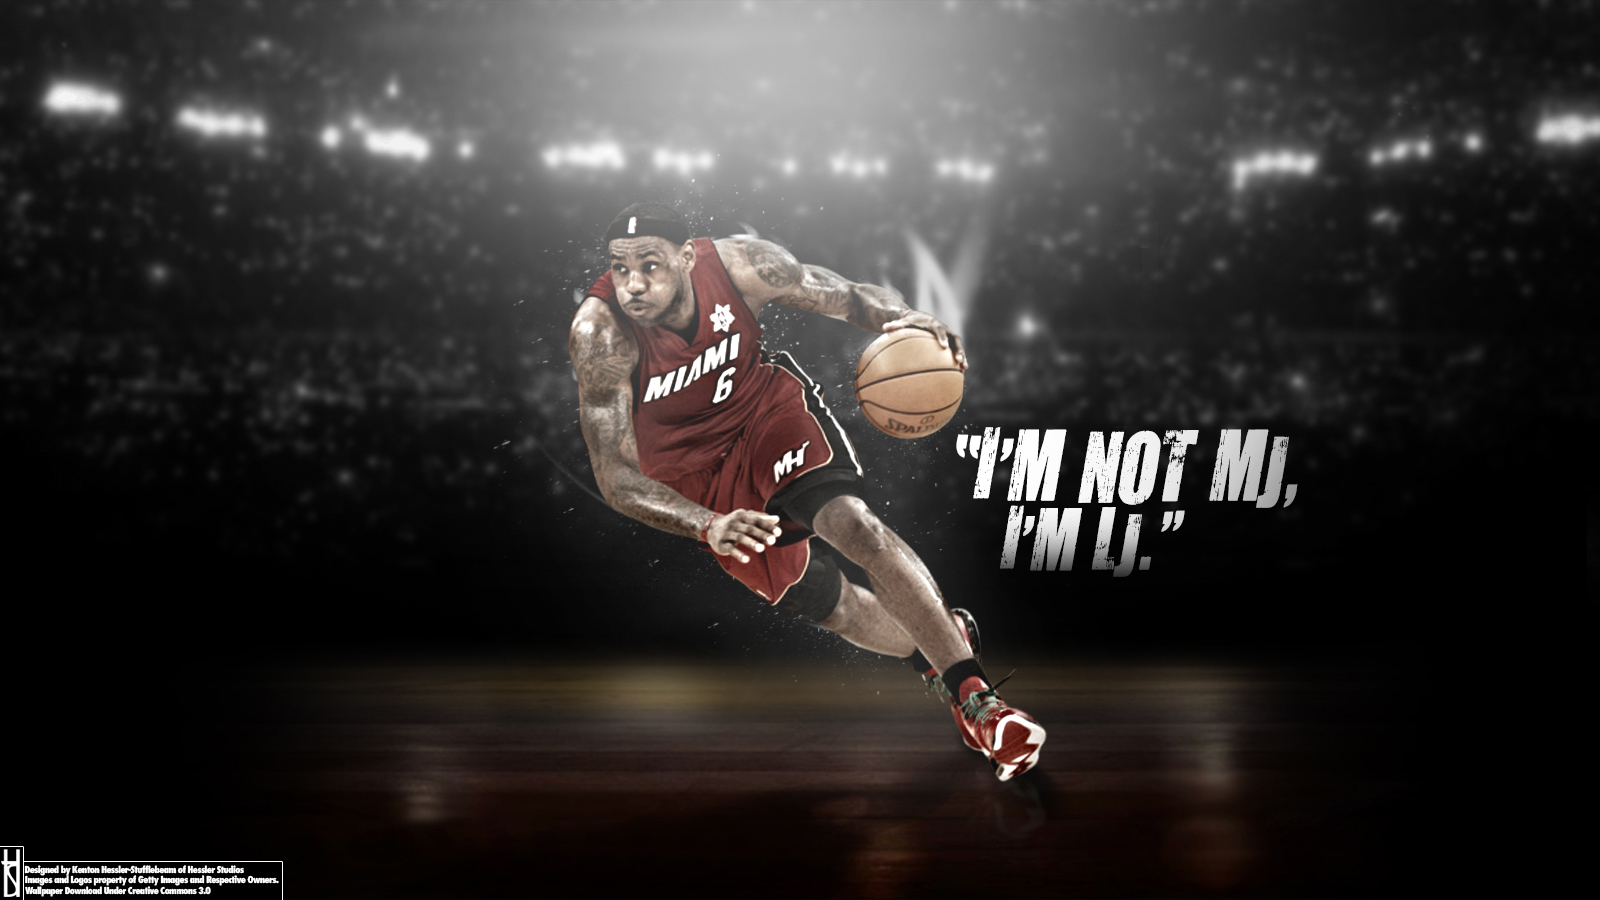 Best 48 Lebron James Wallpapers On Hipwallpaper Cartoon Lebron James Wallpaper James Bond Wallpaper And James And The Giant Peach Wallpaper